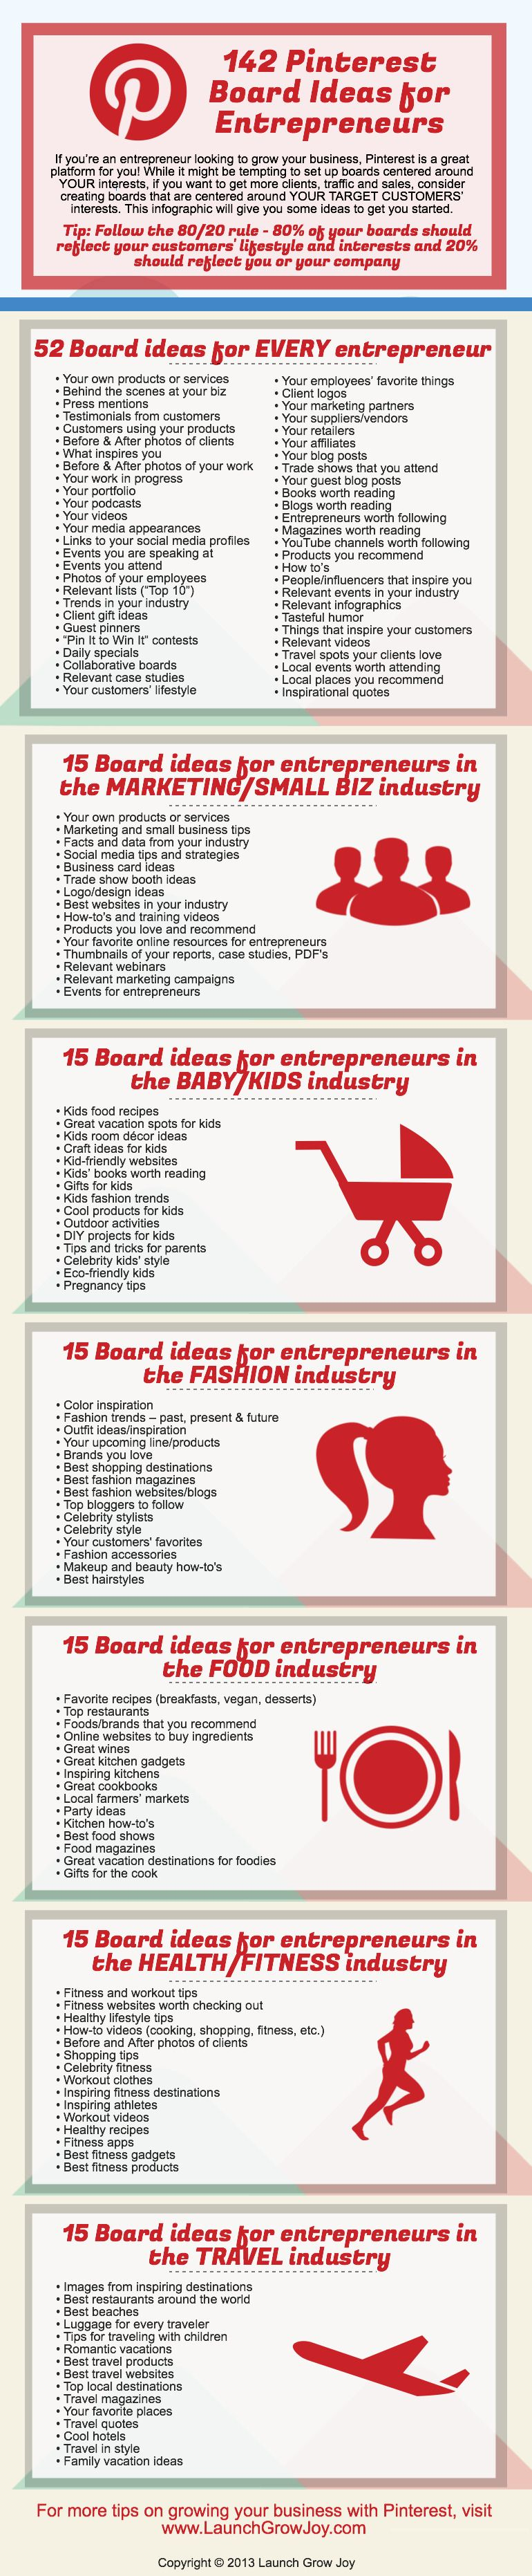 142 #Pinterest Board Ideas for Entrepreneurs